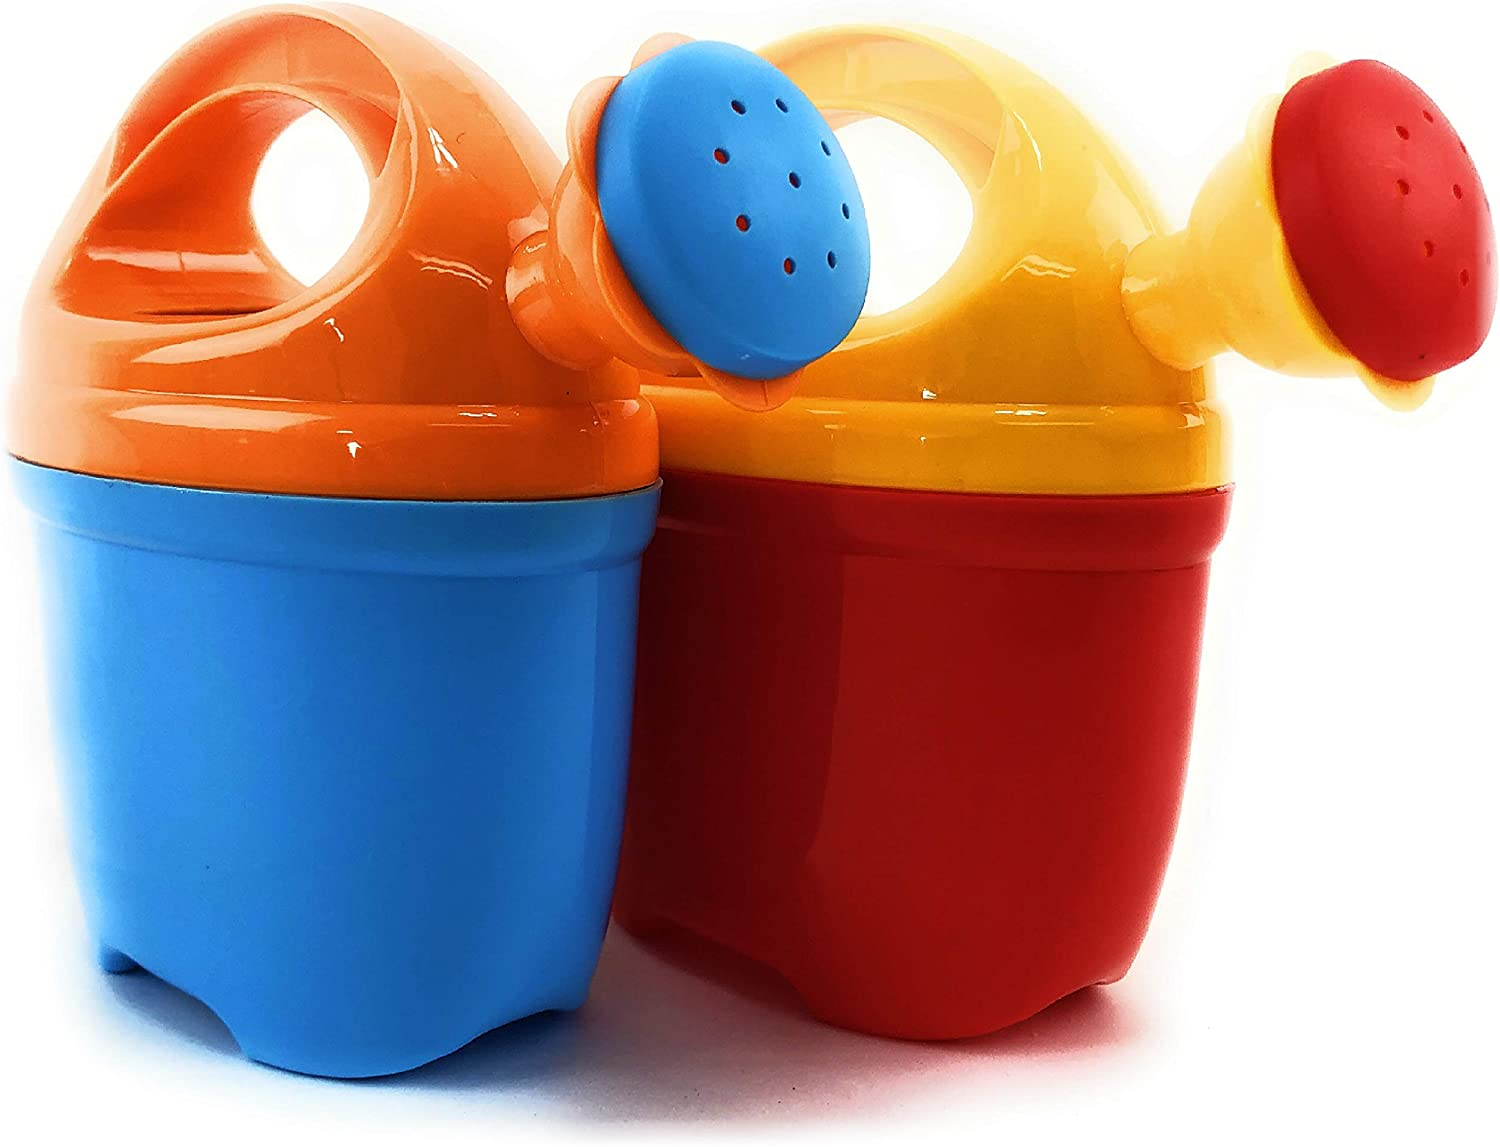 "Matty's Toy Stop 7"" Two Piece Plastic Watering Cans for Kids Blue/Orange & Red/Yellow Gift Set Party Bundle - 2 Pack"